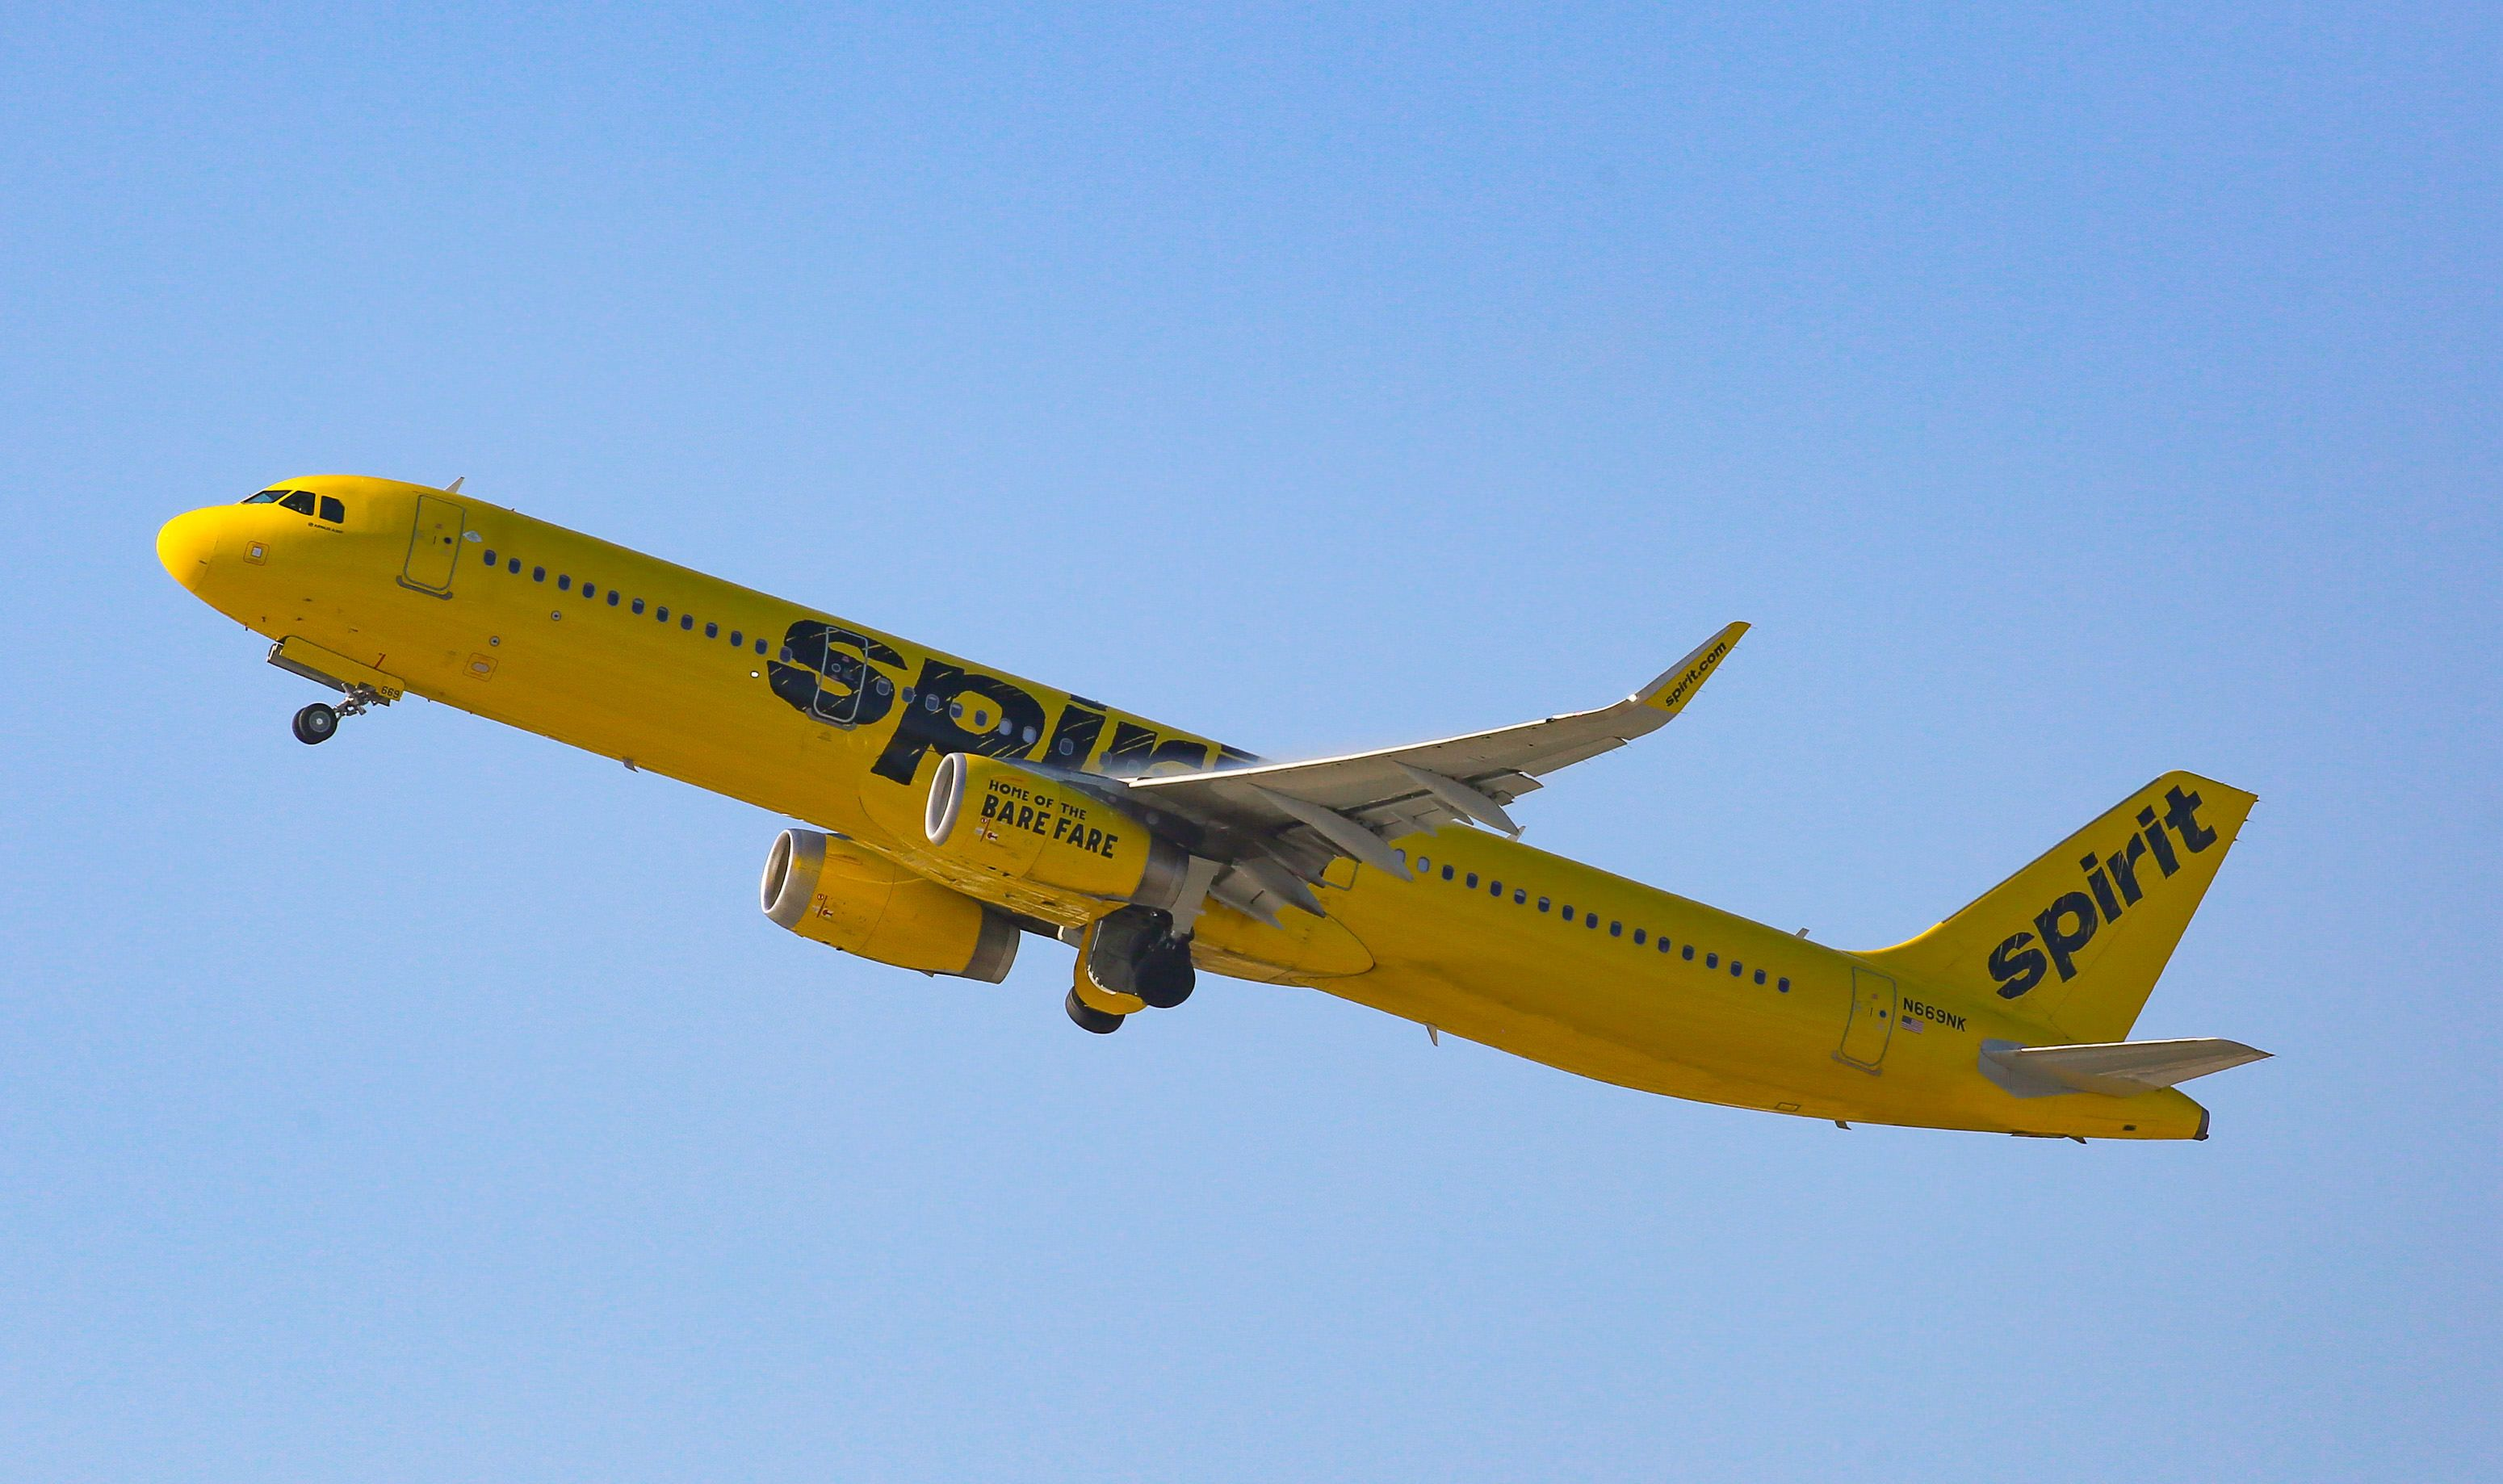 LOS ANGELES, CA - JUNE 18: Spirit Airlines Airbus A319  at Los Angeles International Airport on June 18, 2017 in Los Angeles, California.  (Photo by FG/Bauer-Griffin/GC Images)